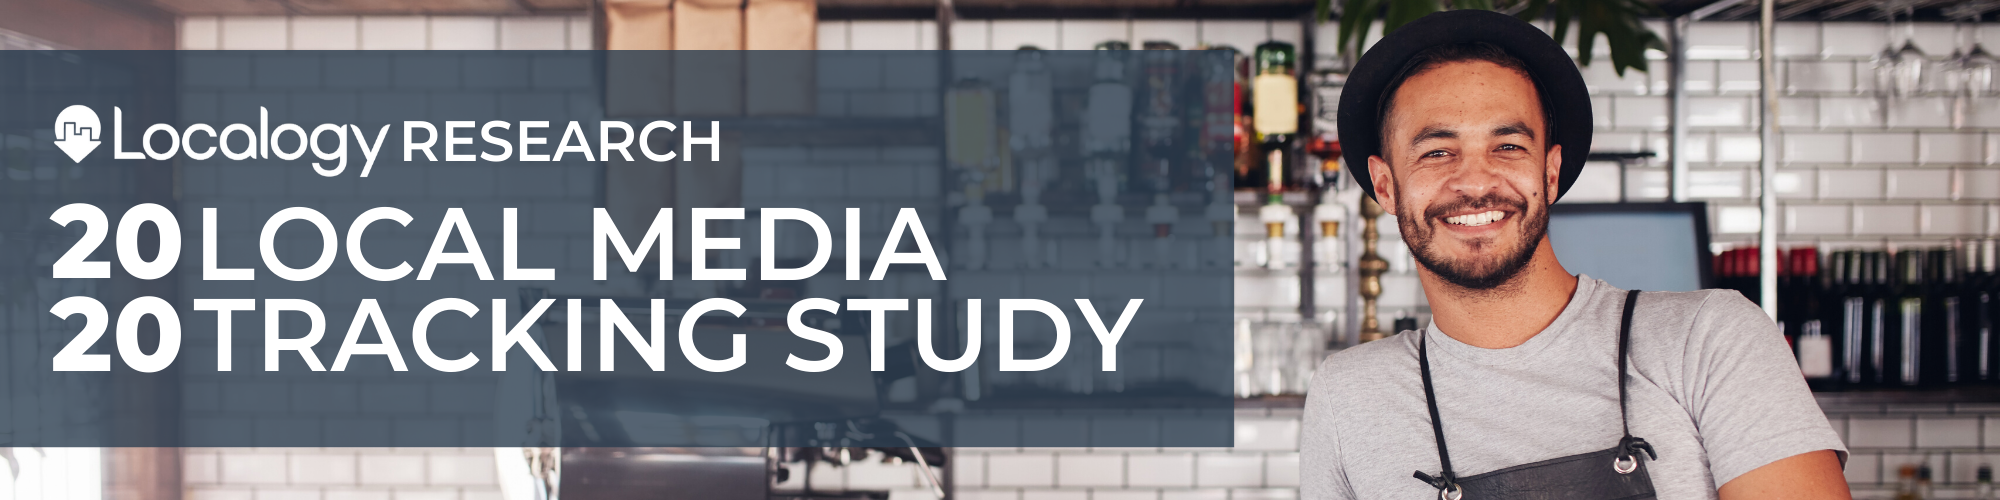 2020 Local Media Tracking Study Landing Page Banner